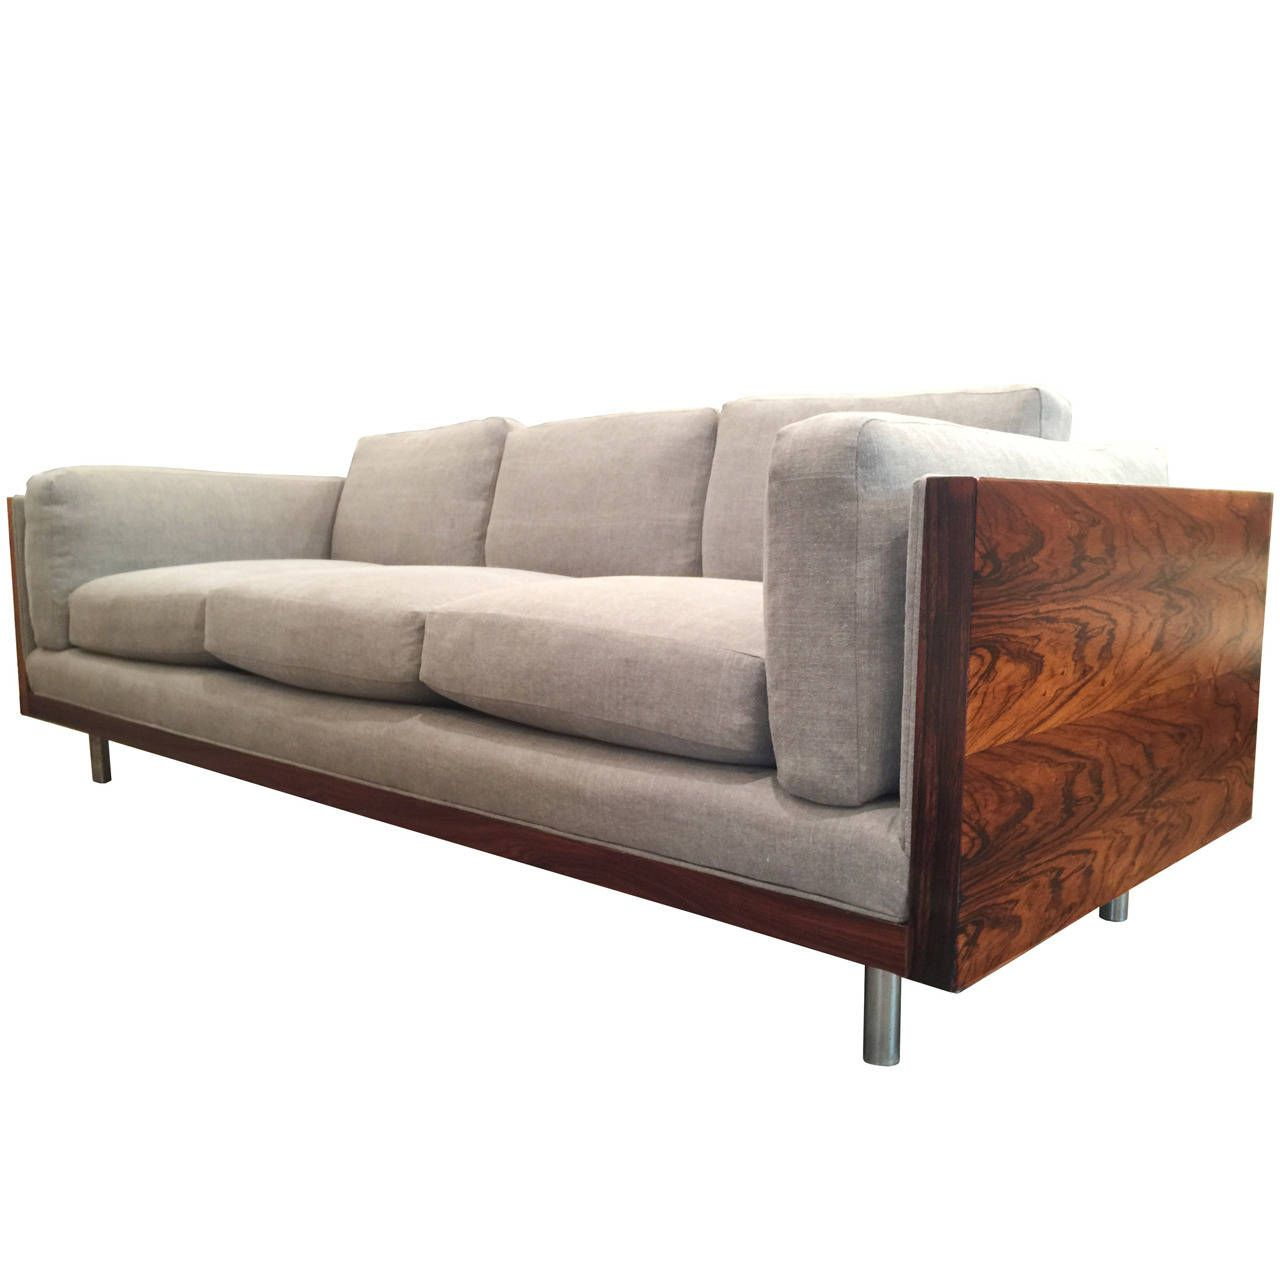 Rosewood Wrapped Milo Baughman Sofa Wraps Unique and Modern